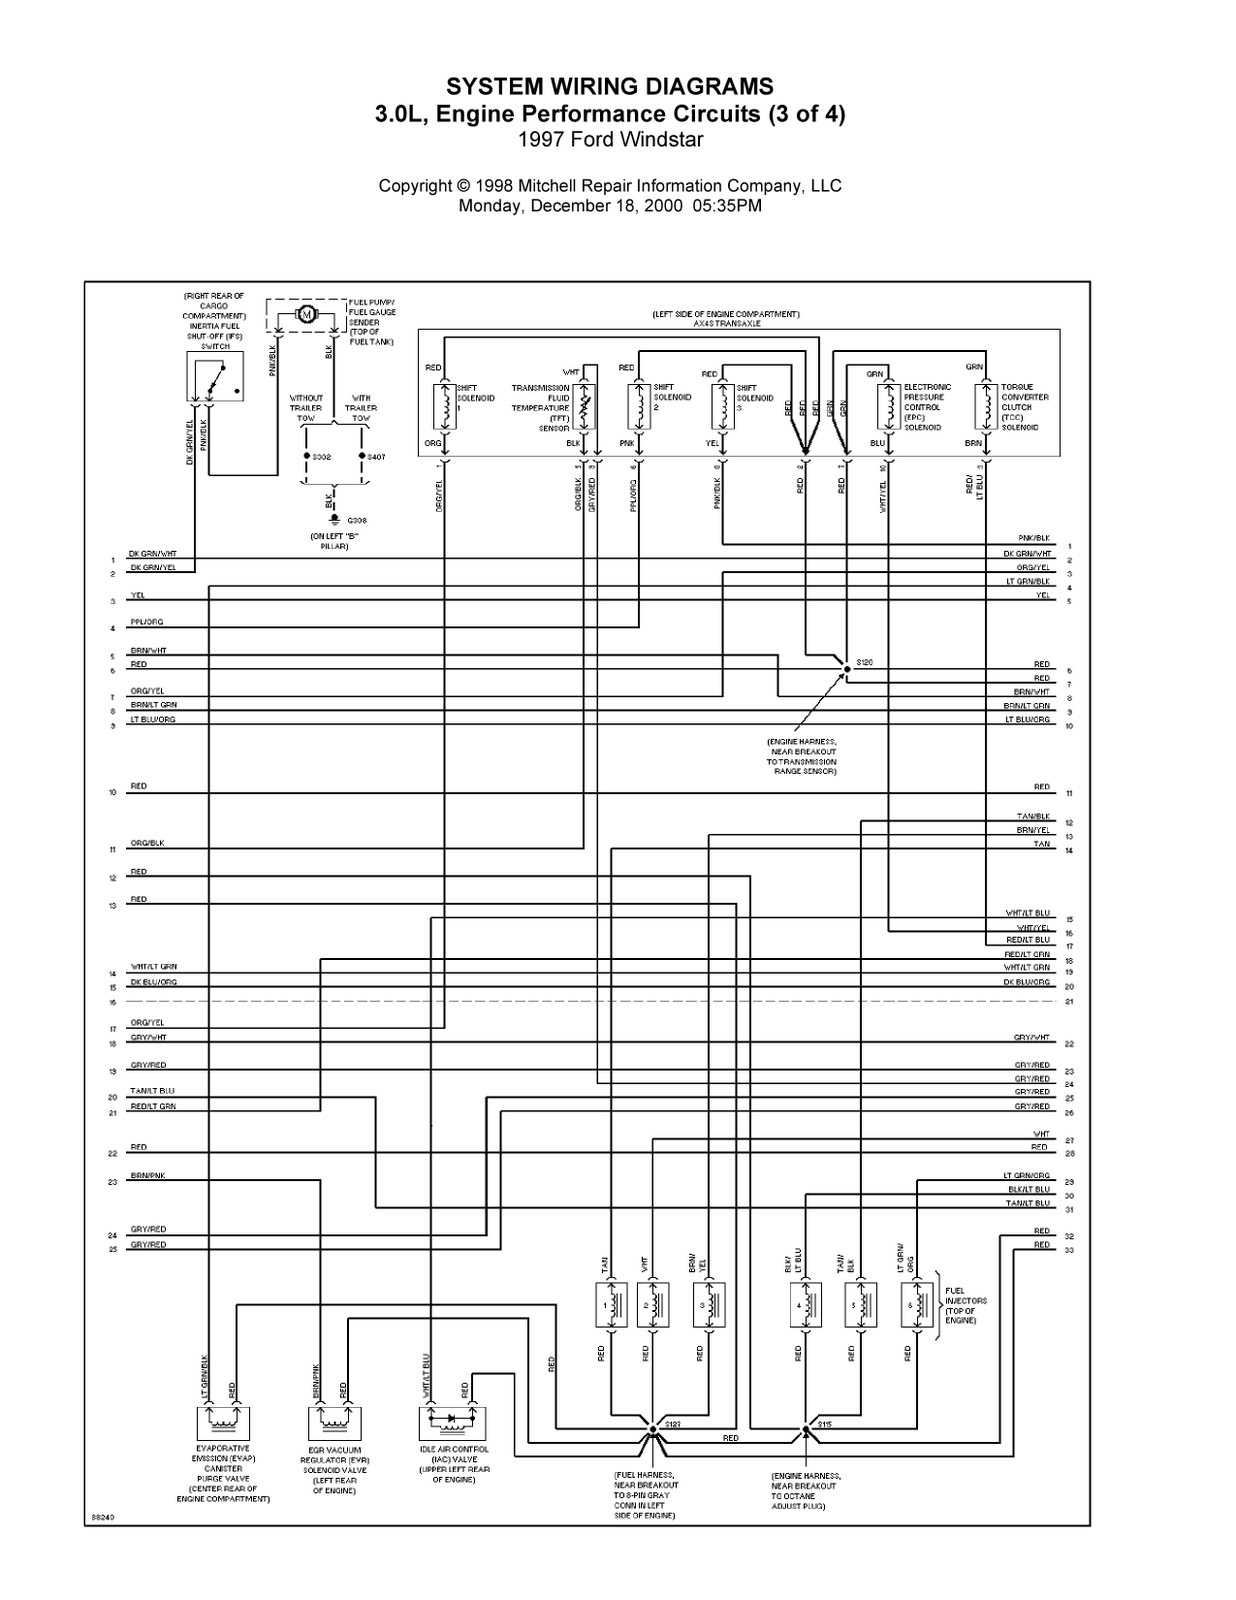 Ford Windstar Wiper Motor Wiring Diagram